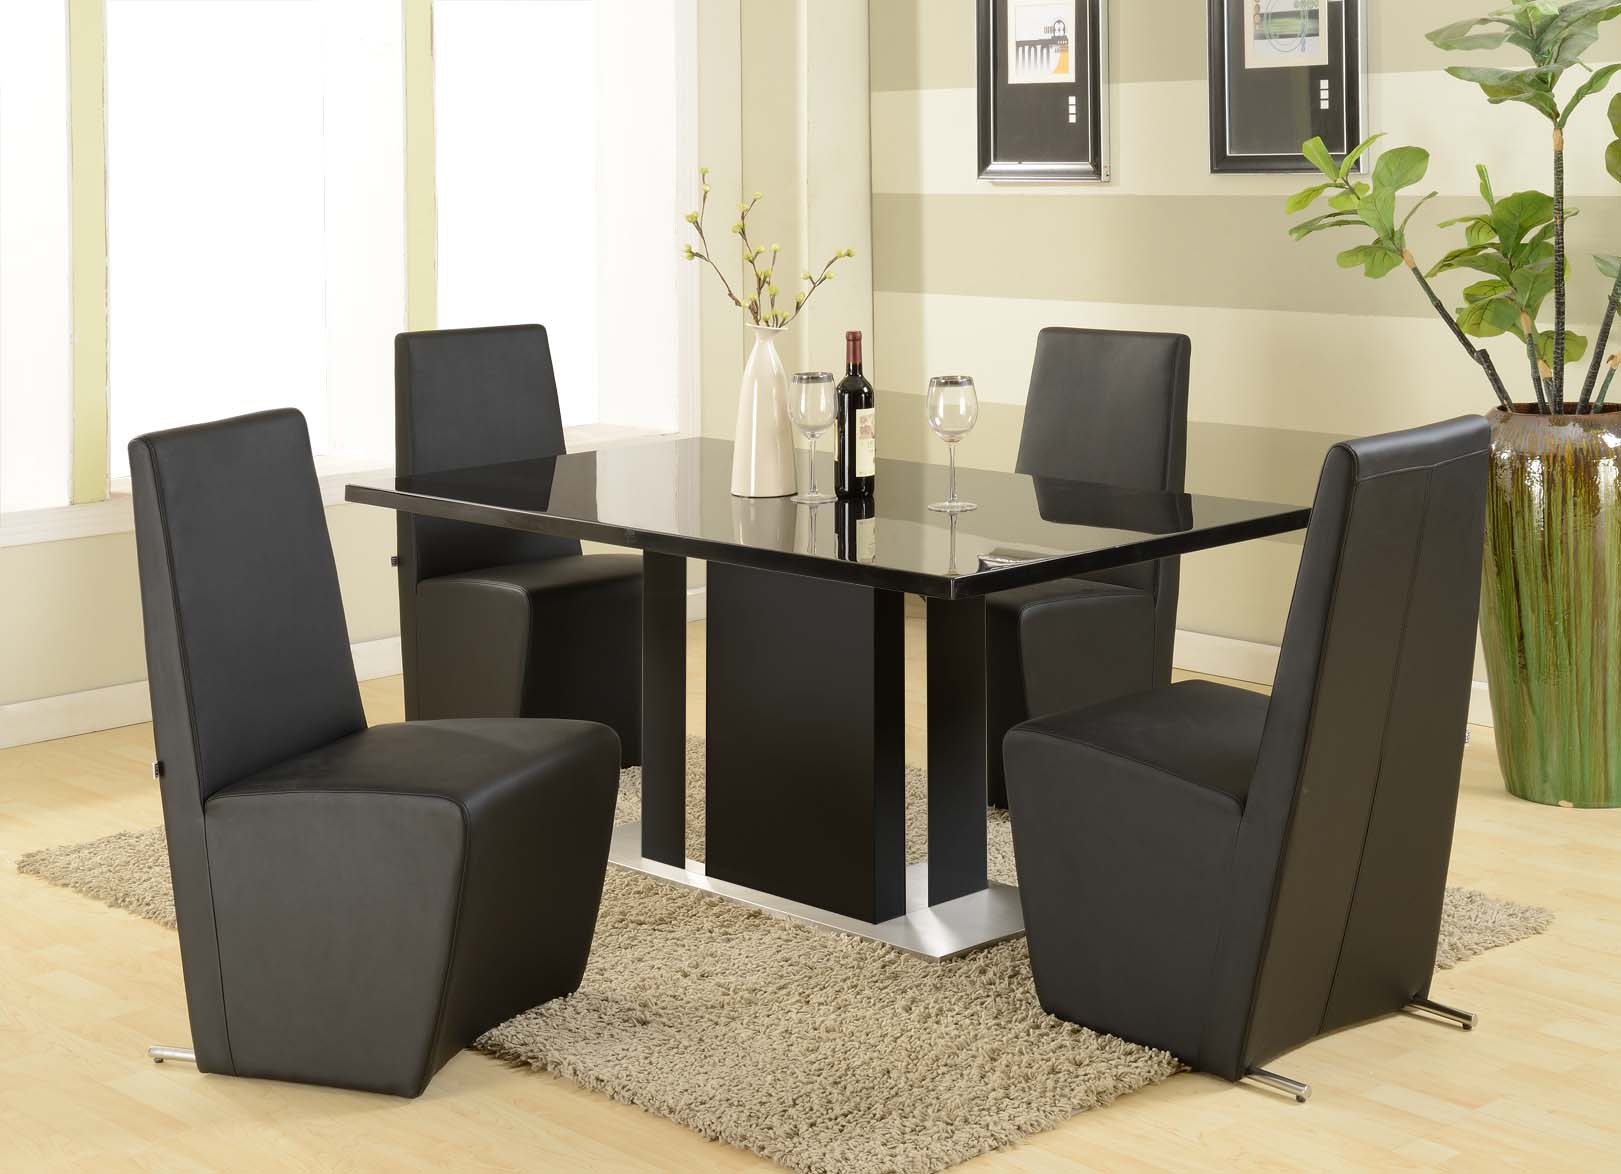 Modern furniture table home design roosa for Modern and contemporary furniture